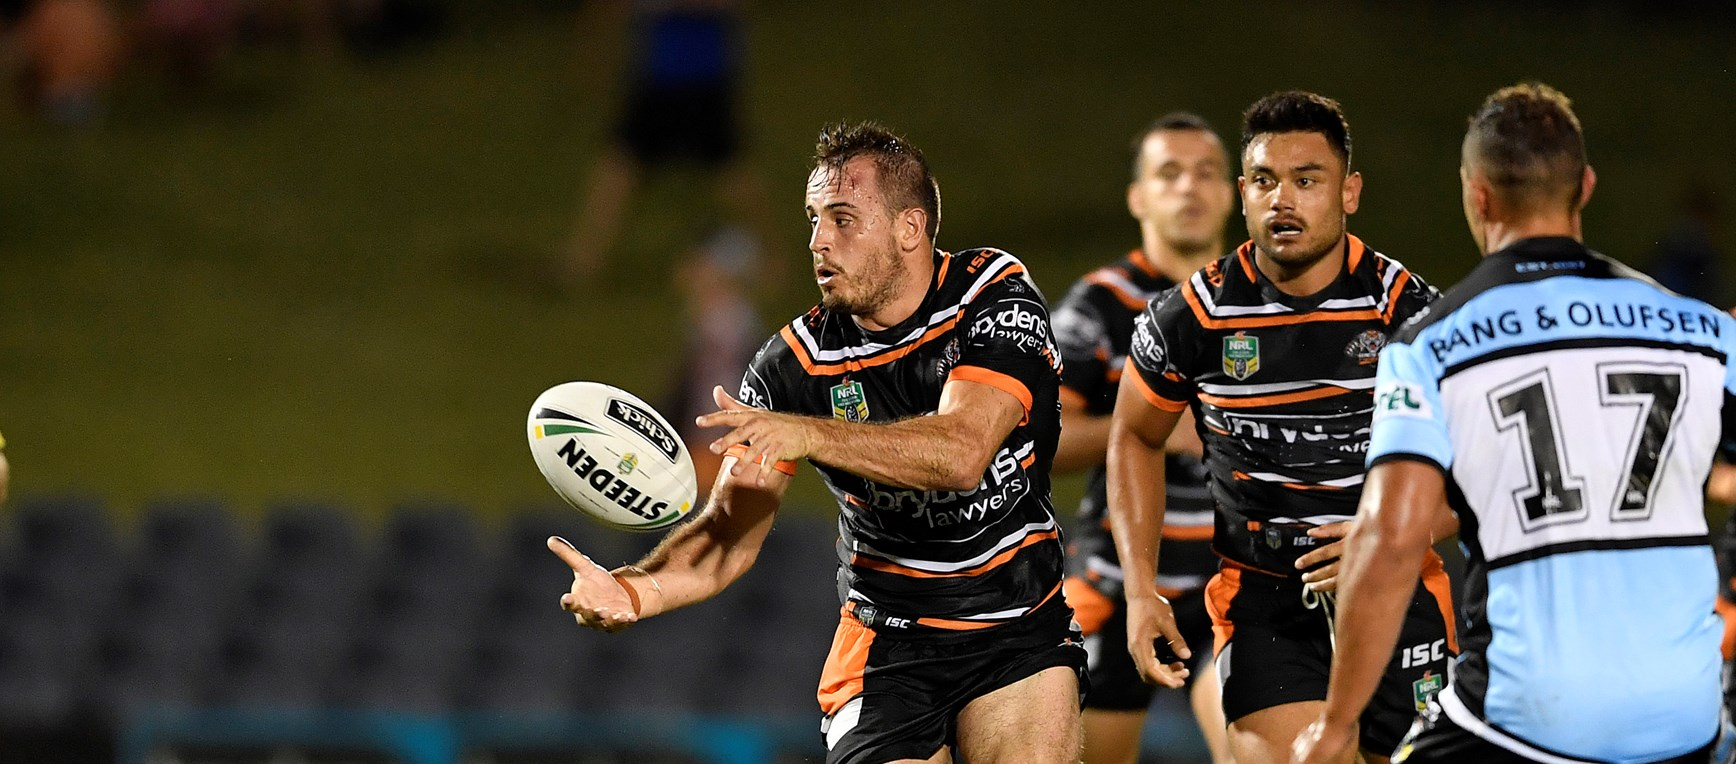 Gallery: Wests Tigers v Sharks Trial